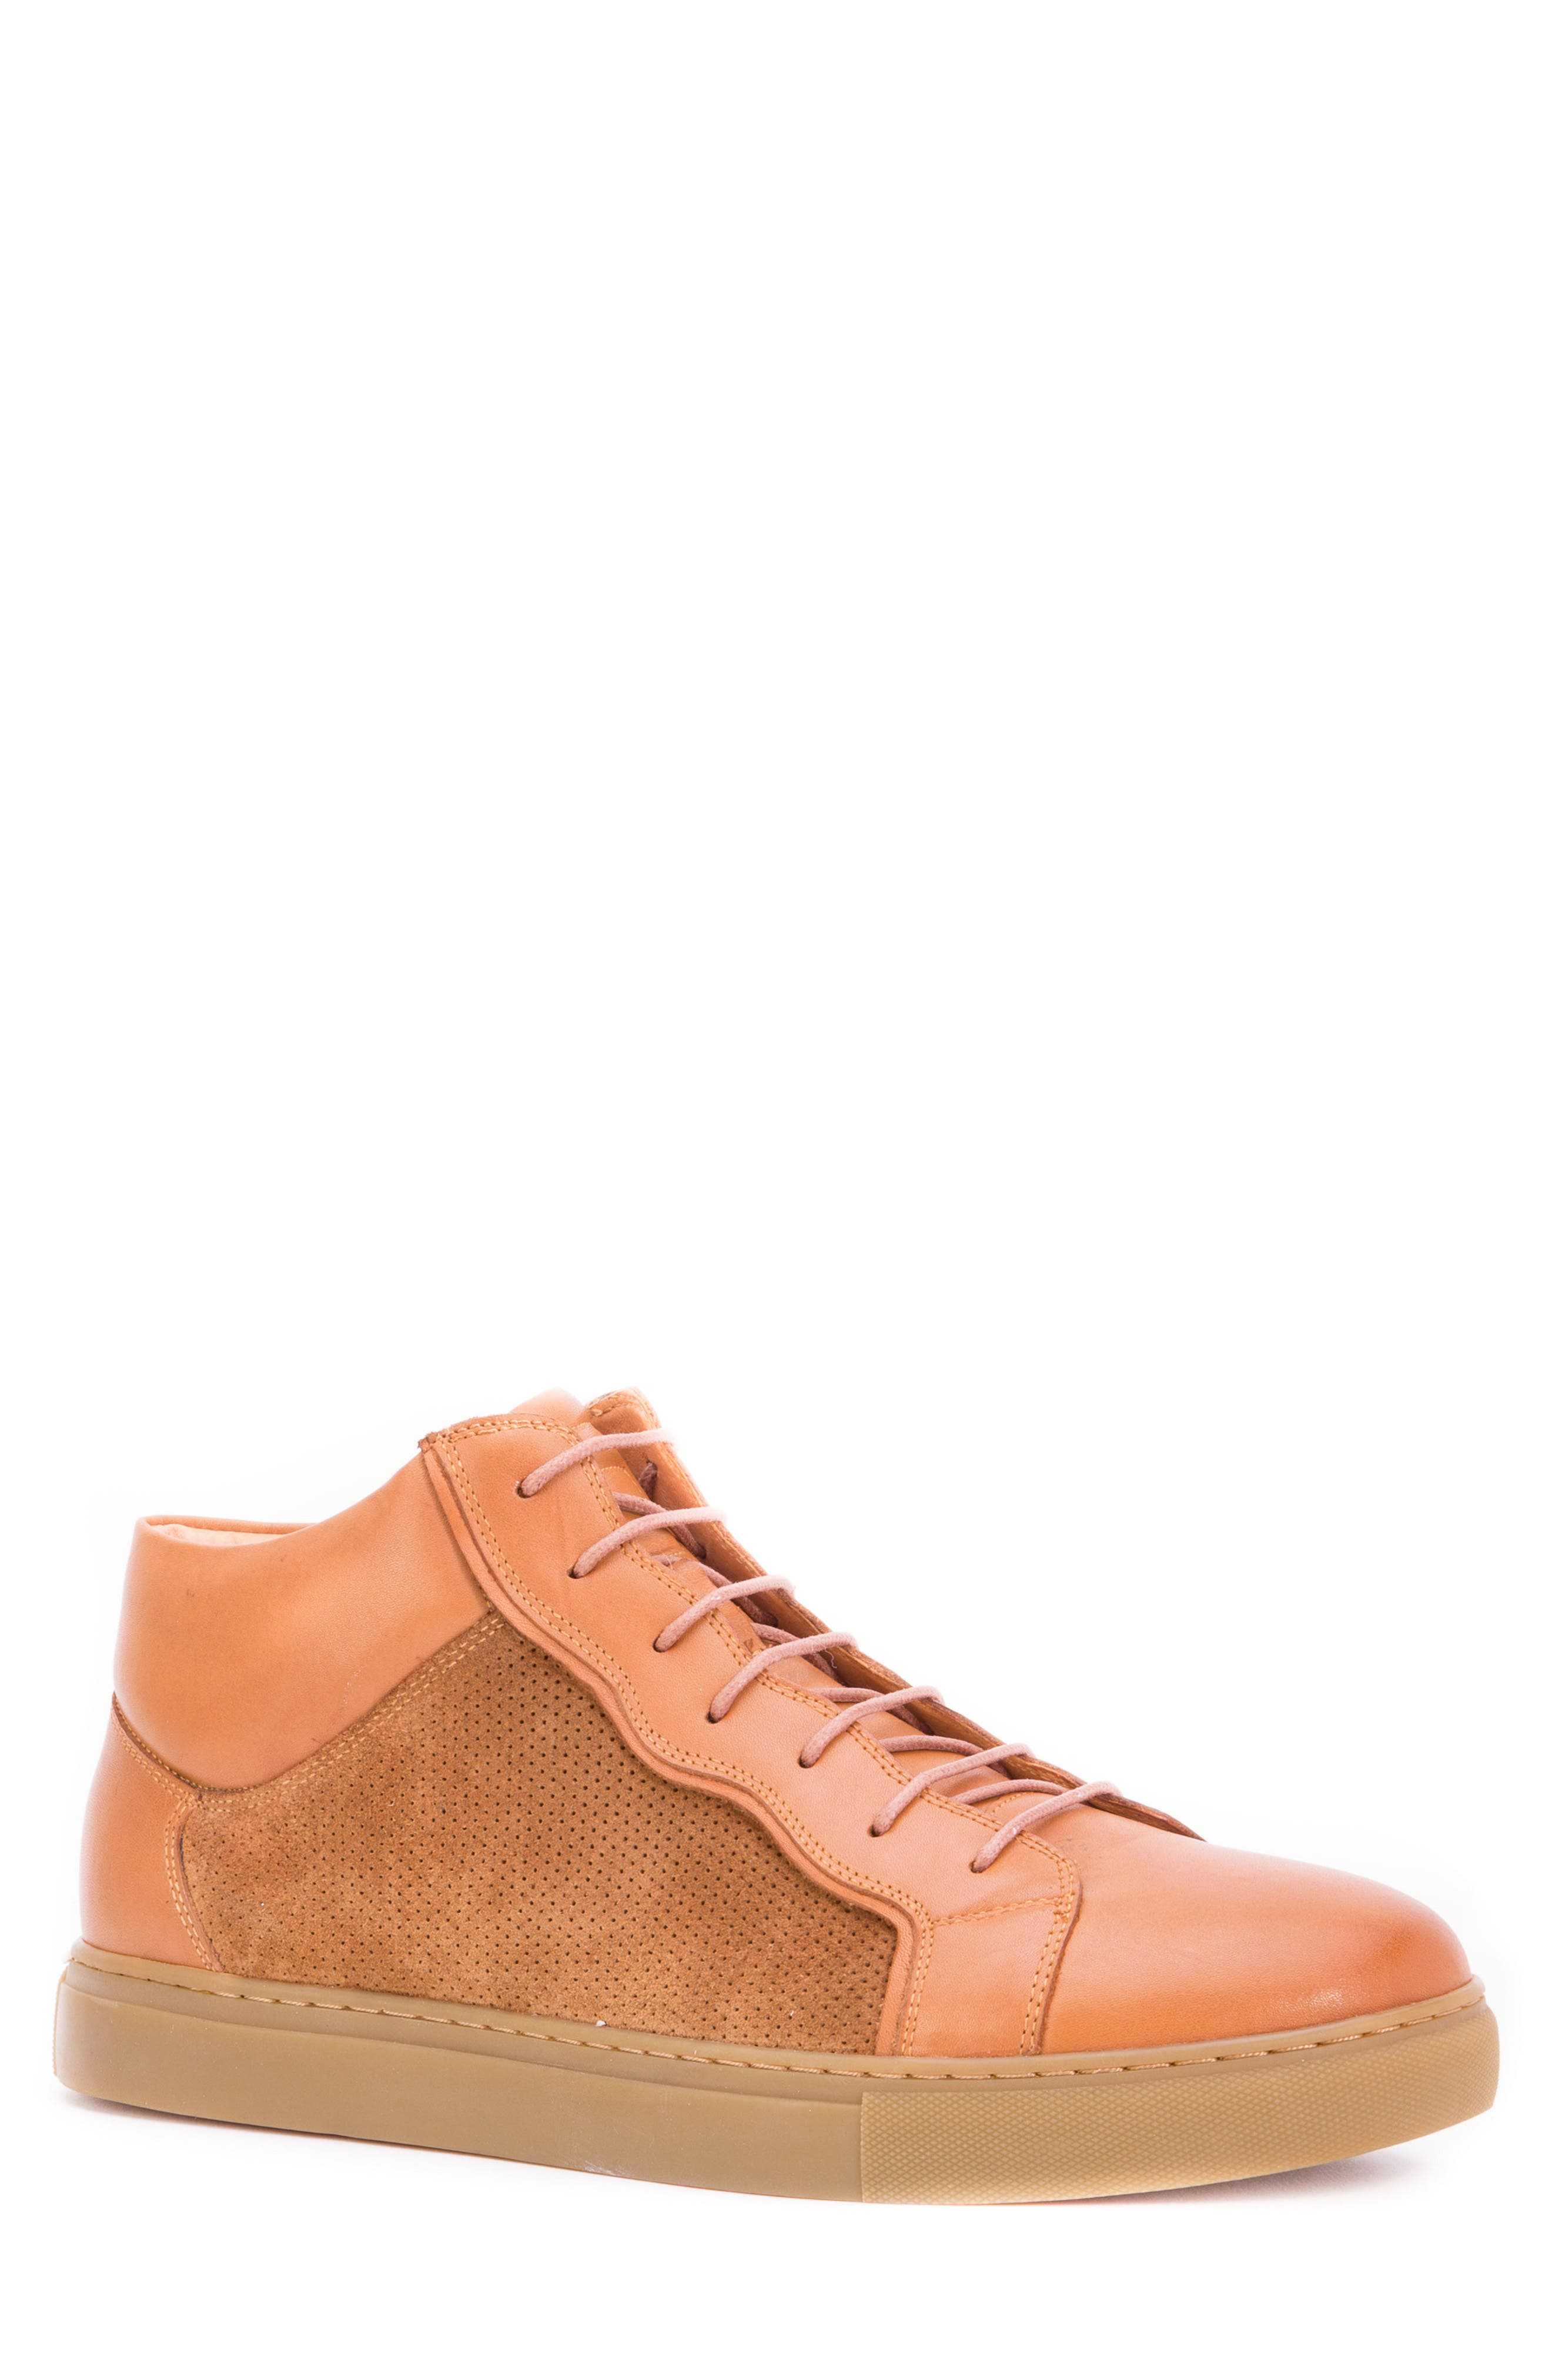 Twist Perforated High Top Sneaker,                         Main,                         color, Cognac Leather/ Suede